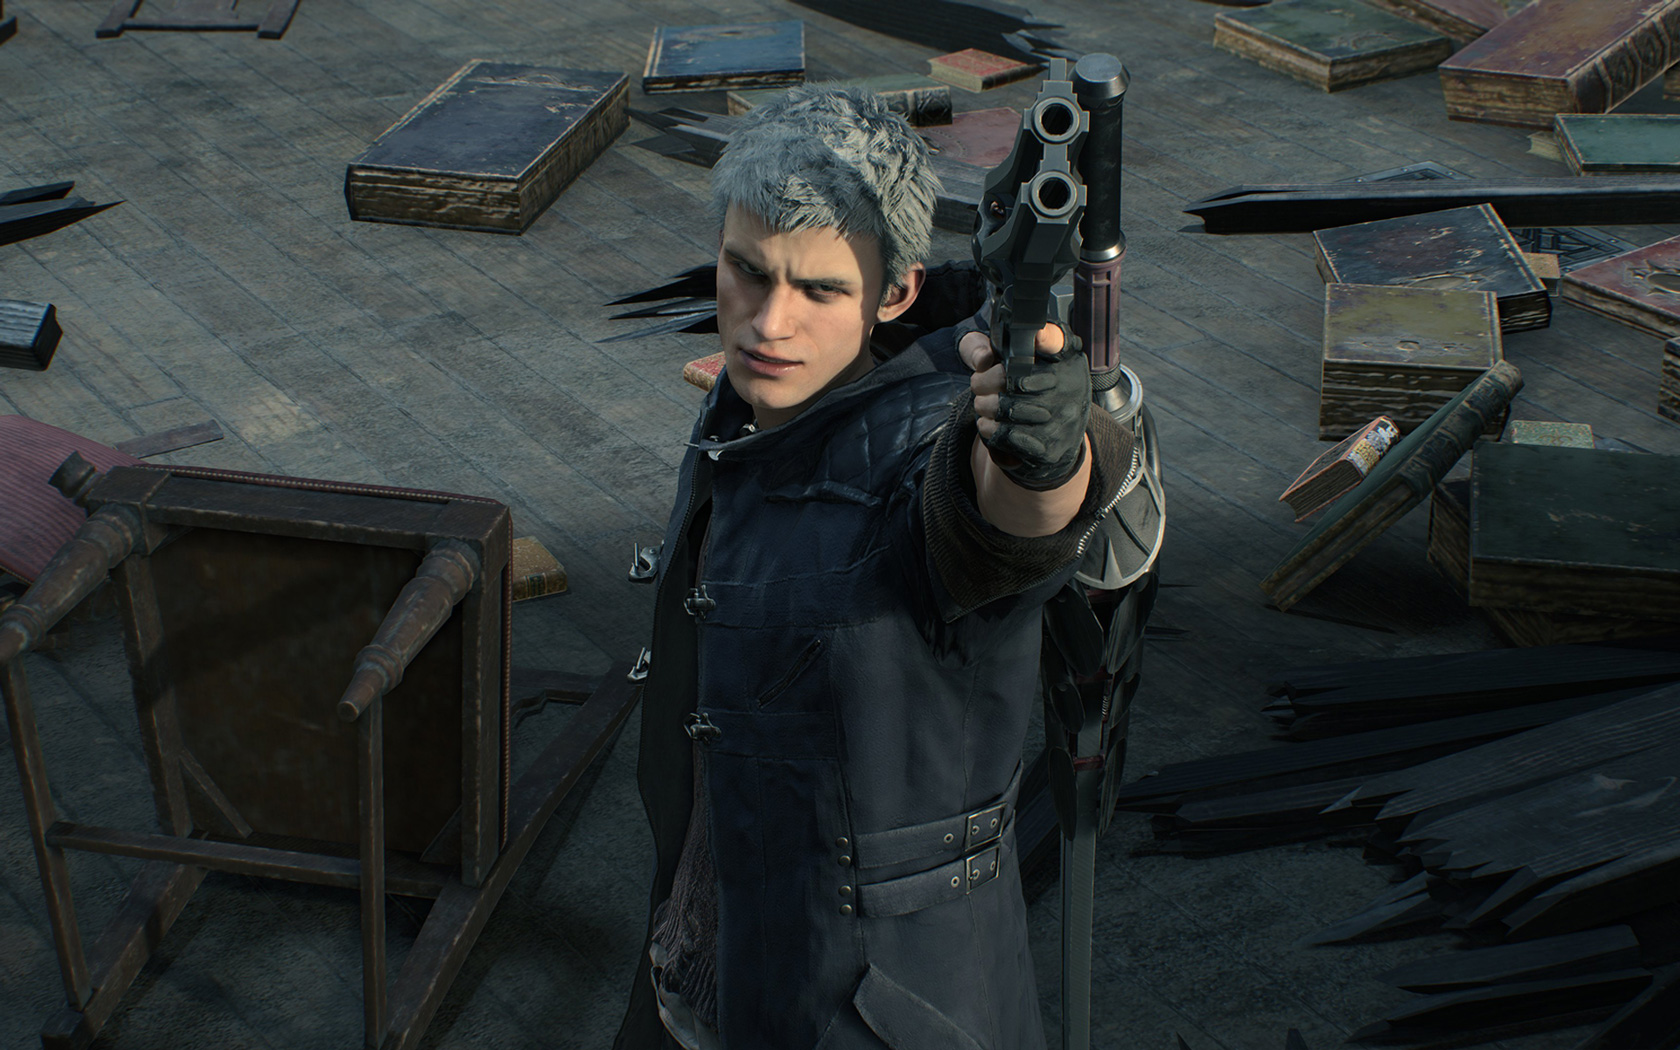 Free Devil May Cry 5 Wallpaper in 1680x1050